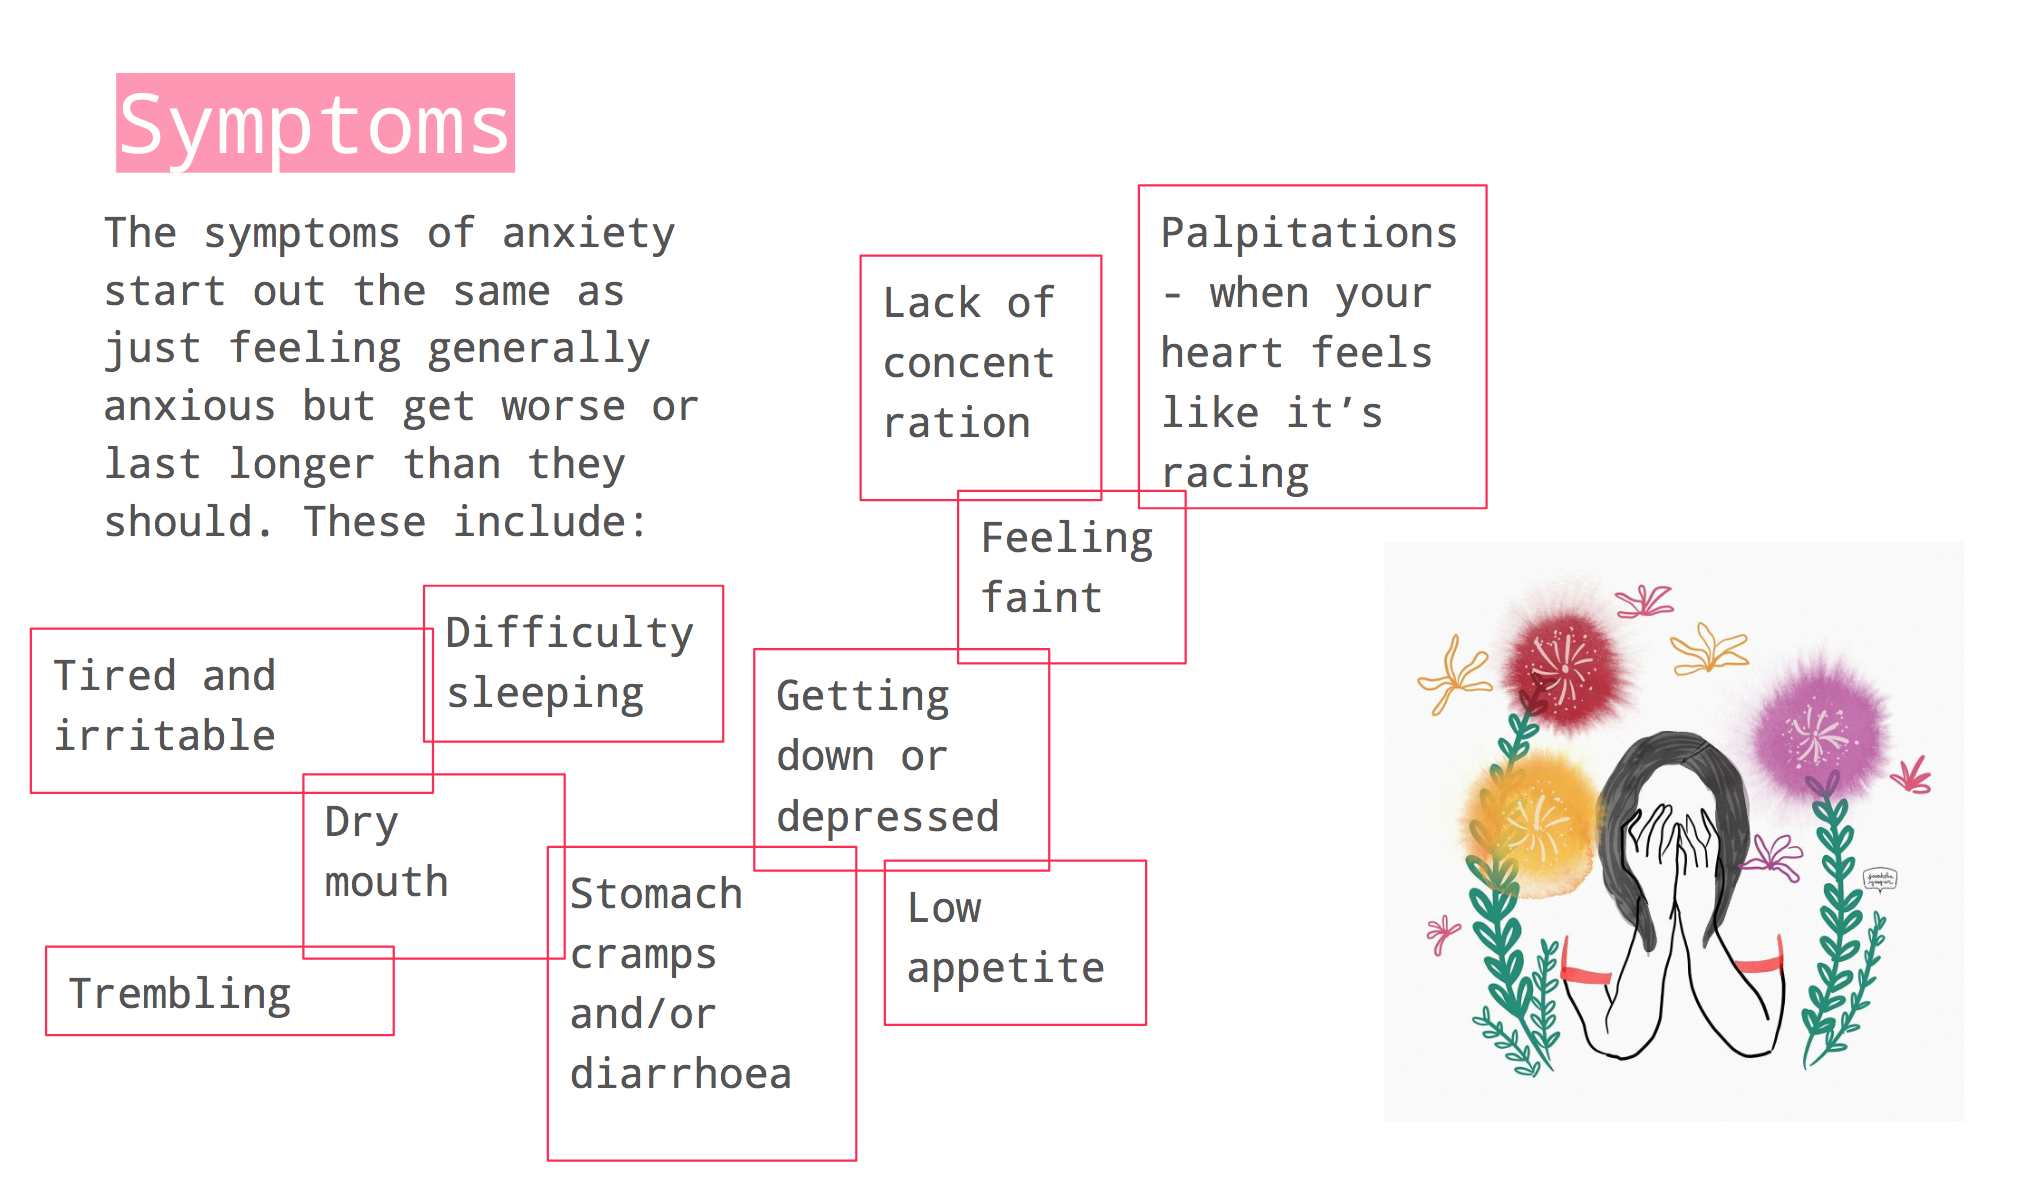 How I used Graphic Design to raise awareness about anxiety